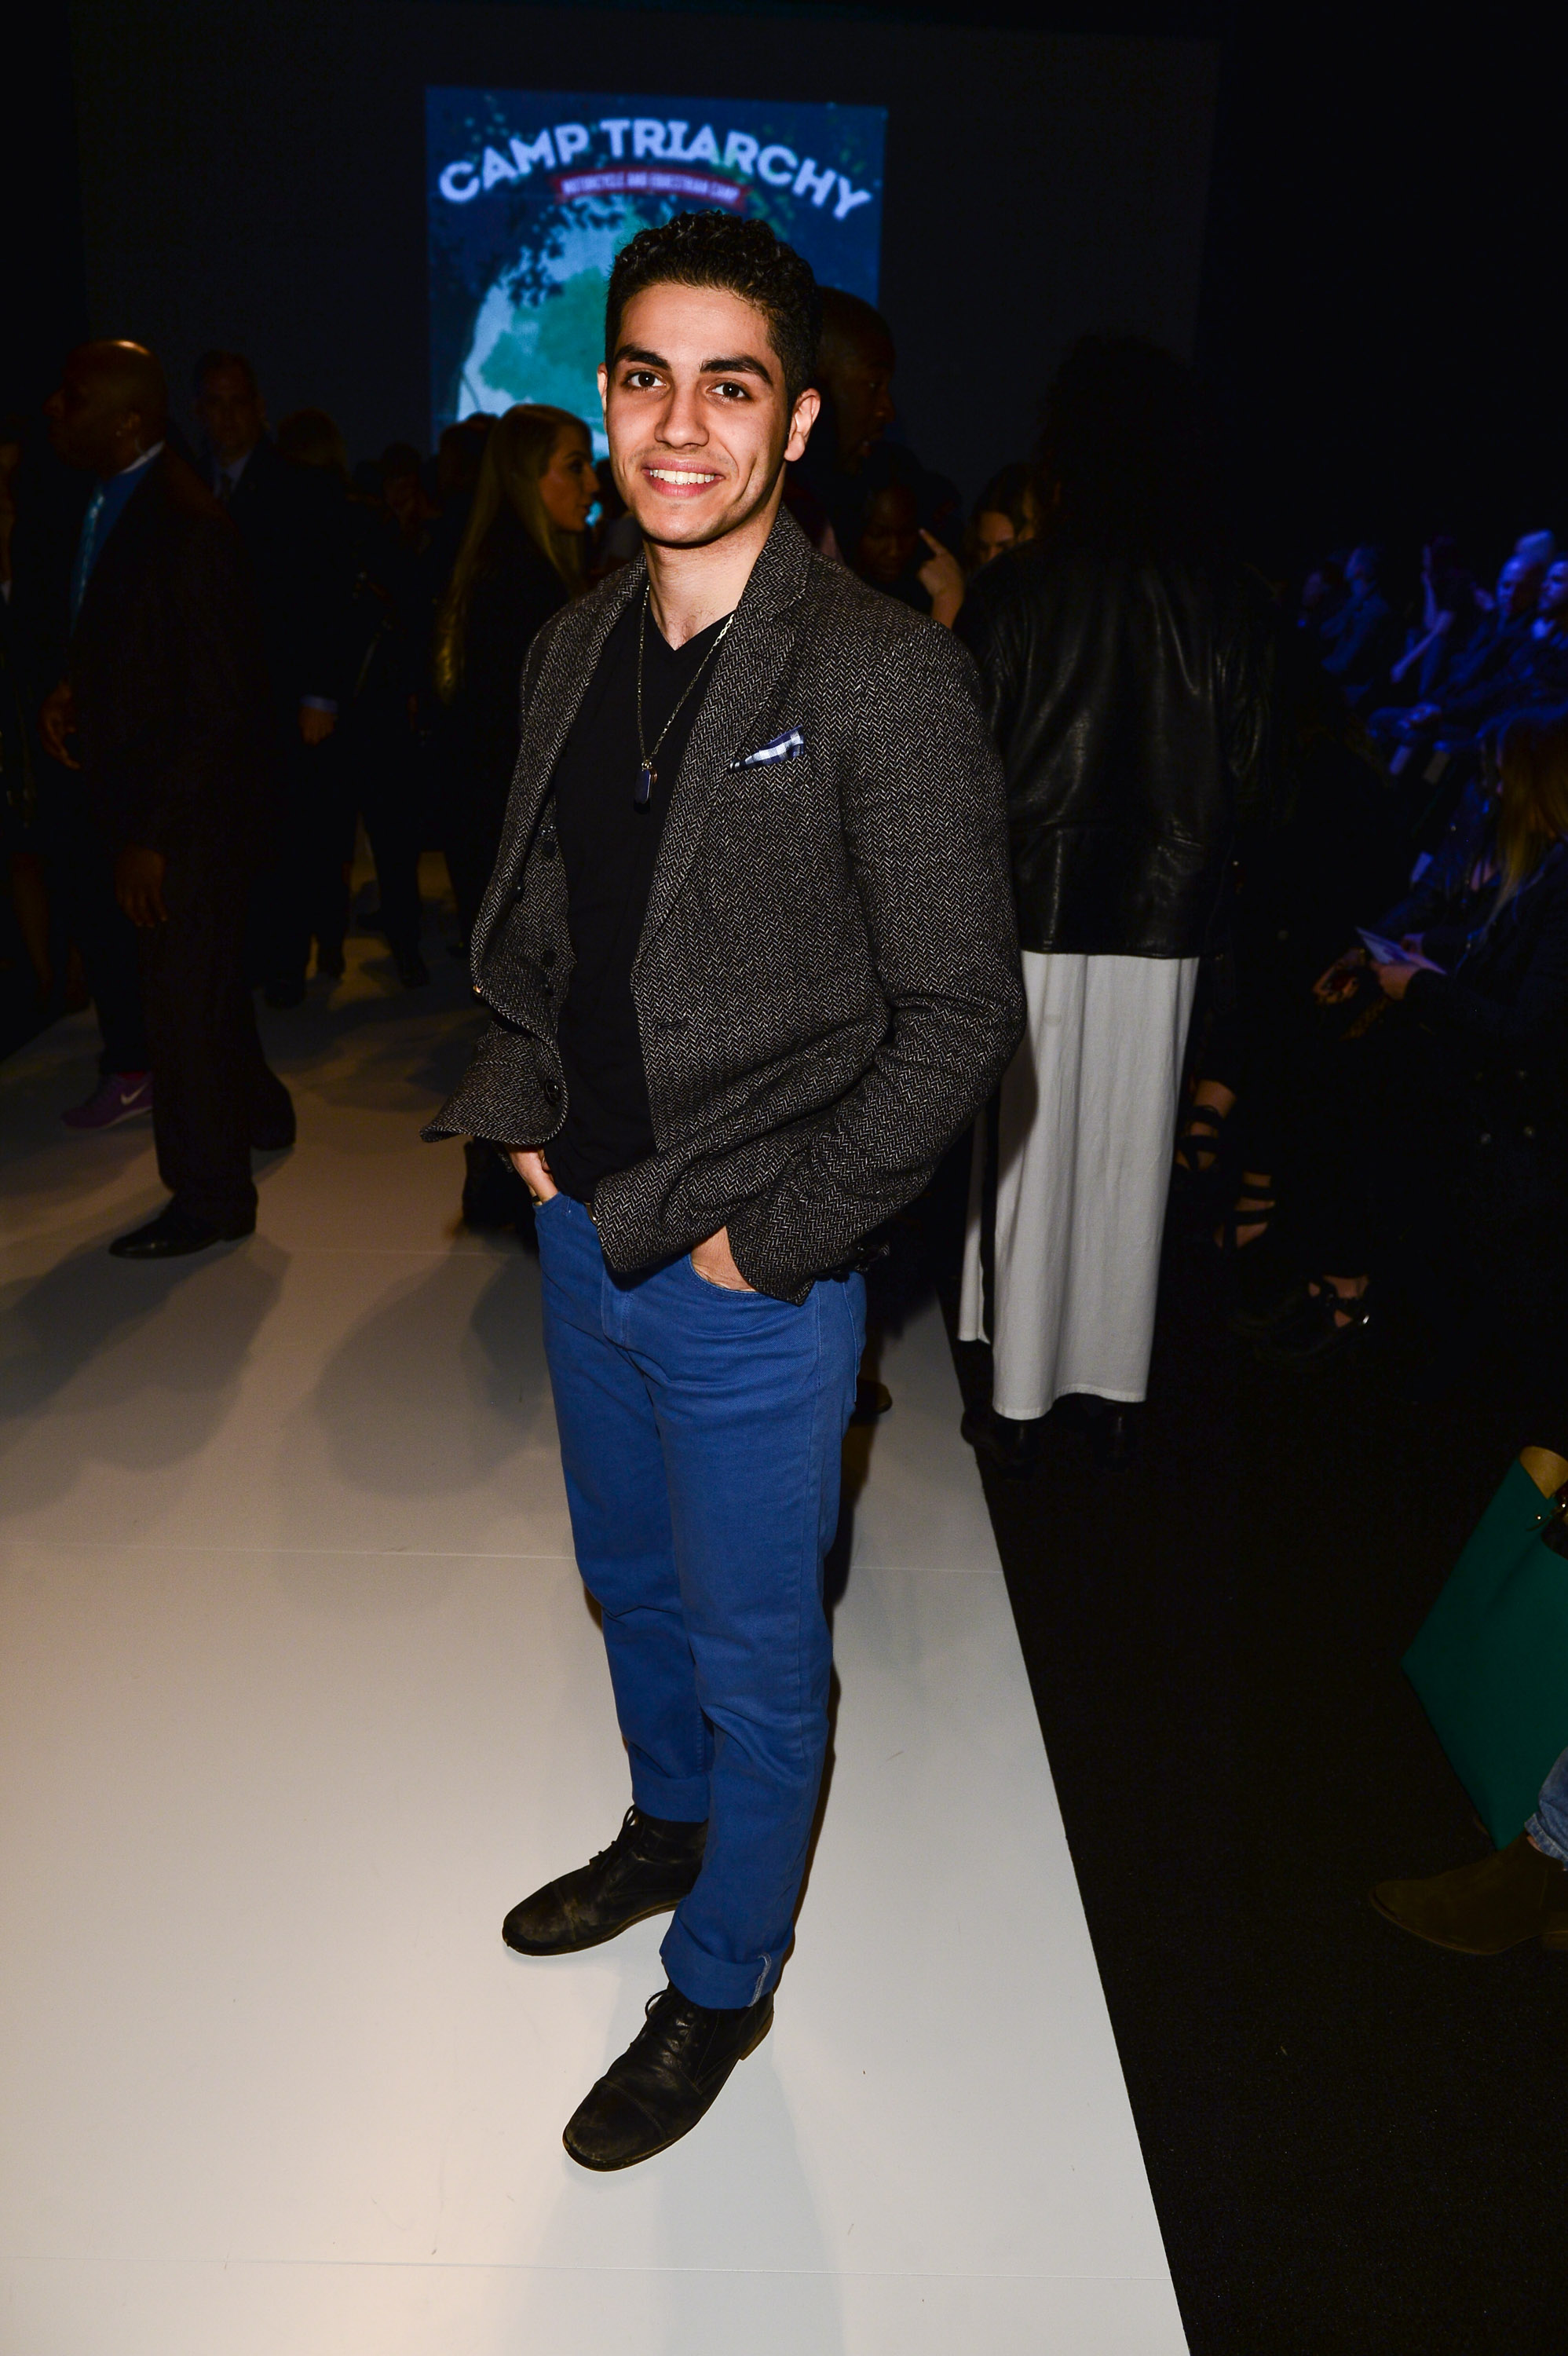 Actor Mena Massoud attends World MasterCard Fashion Week Fall 2015 Collections Day 3 at David Pecaut Square on March 25, 2015 in Toronto, Canada.